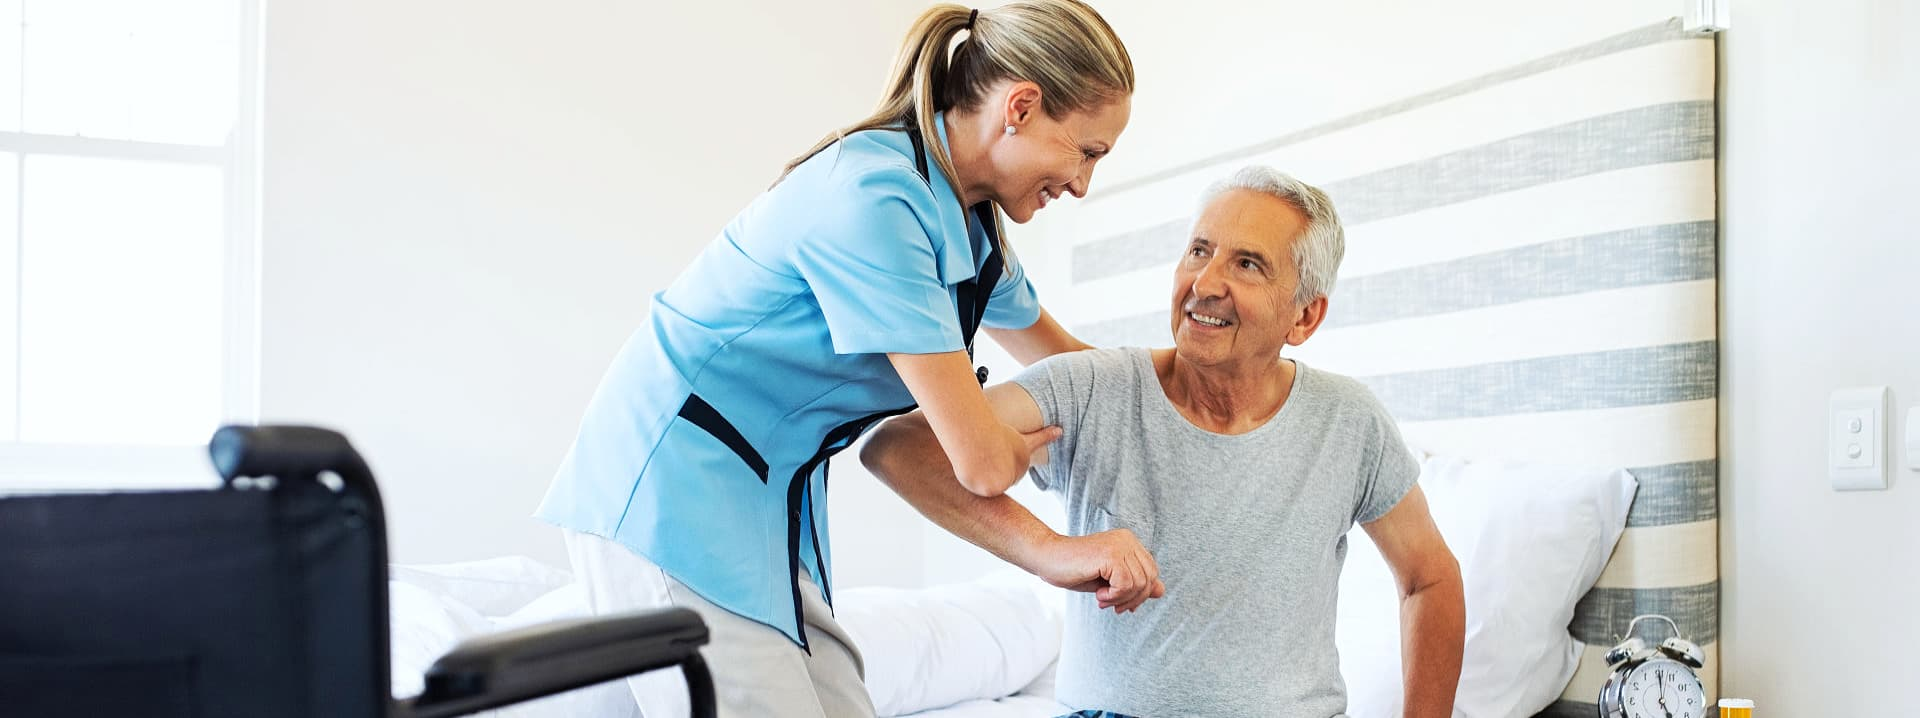 senior man assisted by caregiver to stand